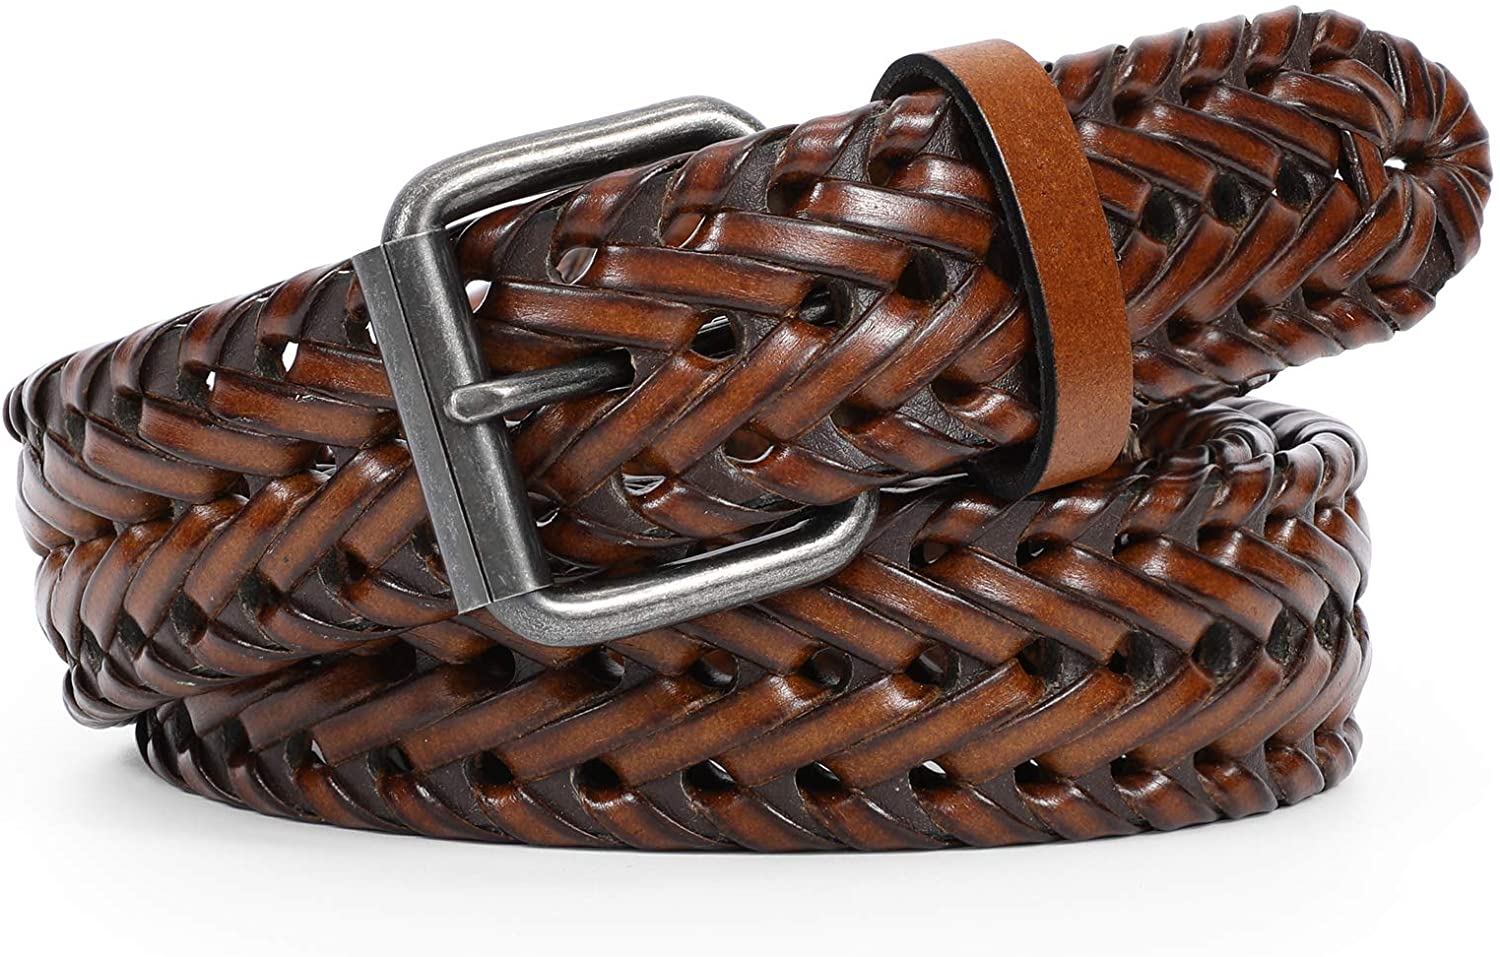 Men's Leather Braided Belt Woven WERFORU Cowhide Courier shipping free shipping Selling and selling B